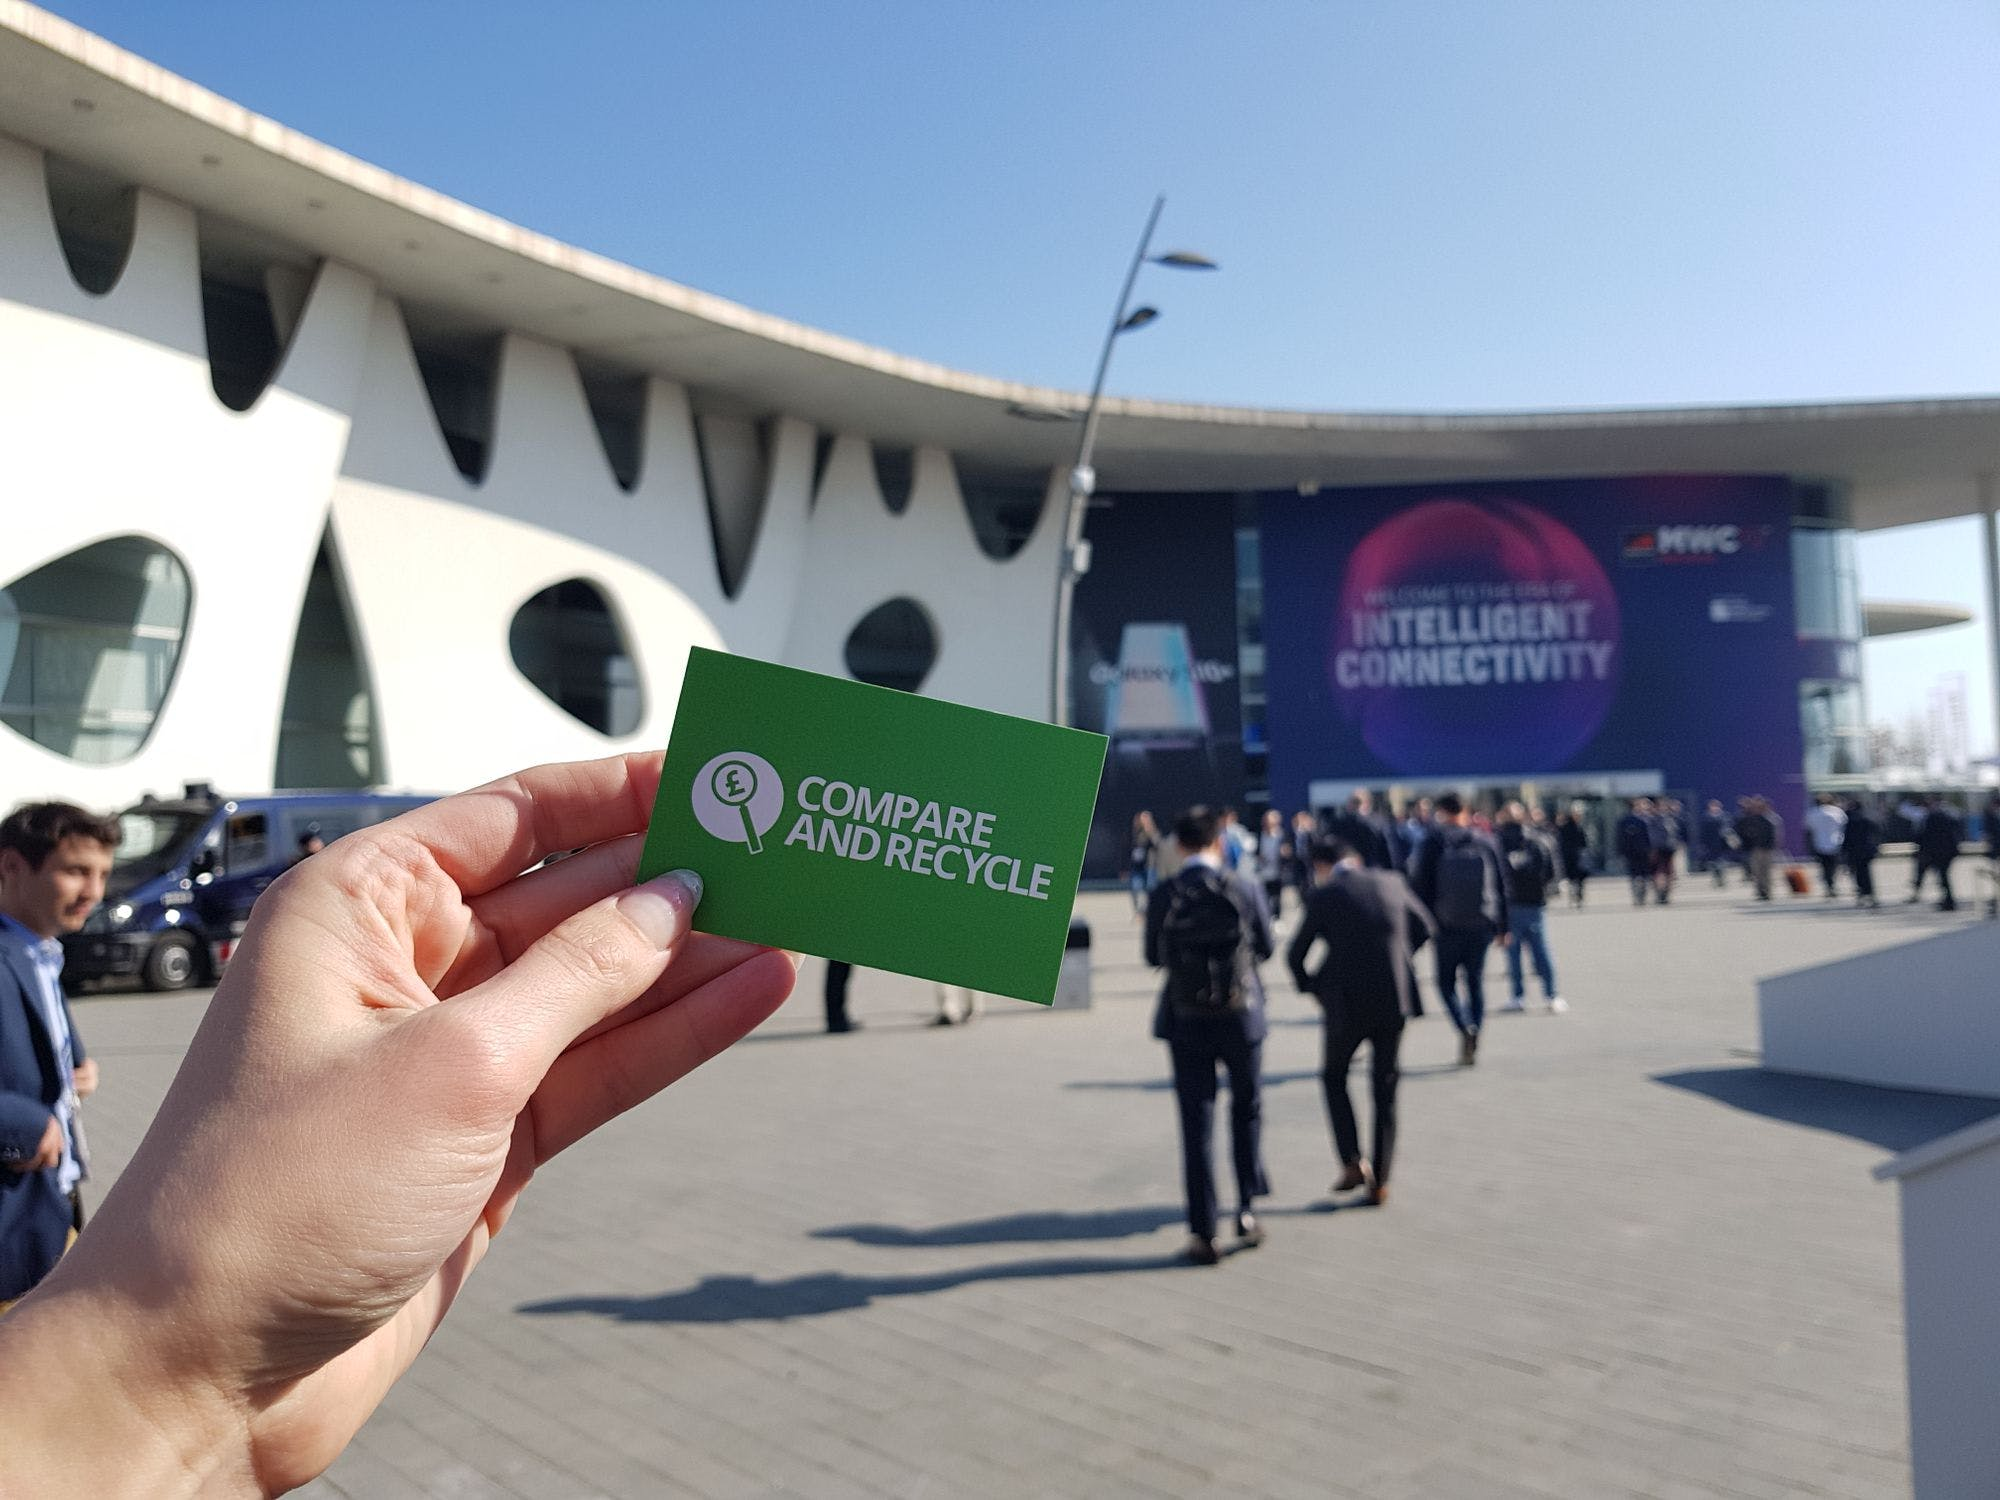 Mobile World Congress 2019: Our Hot Takes